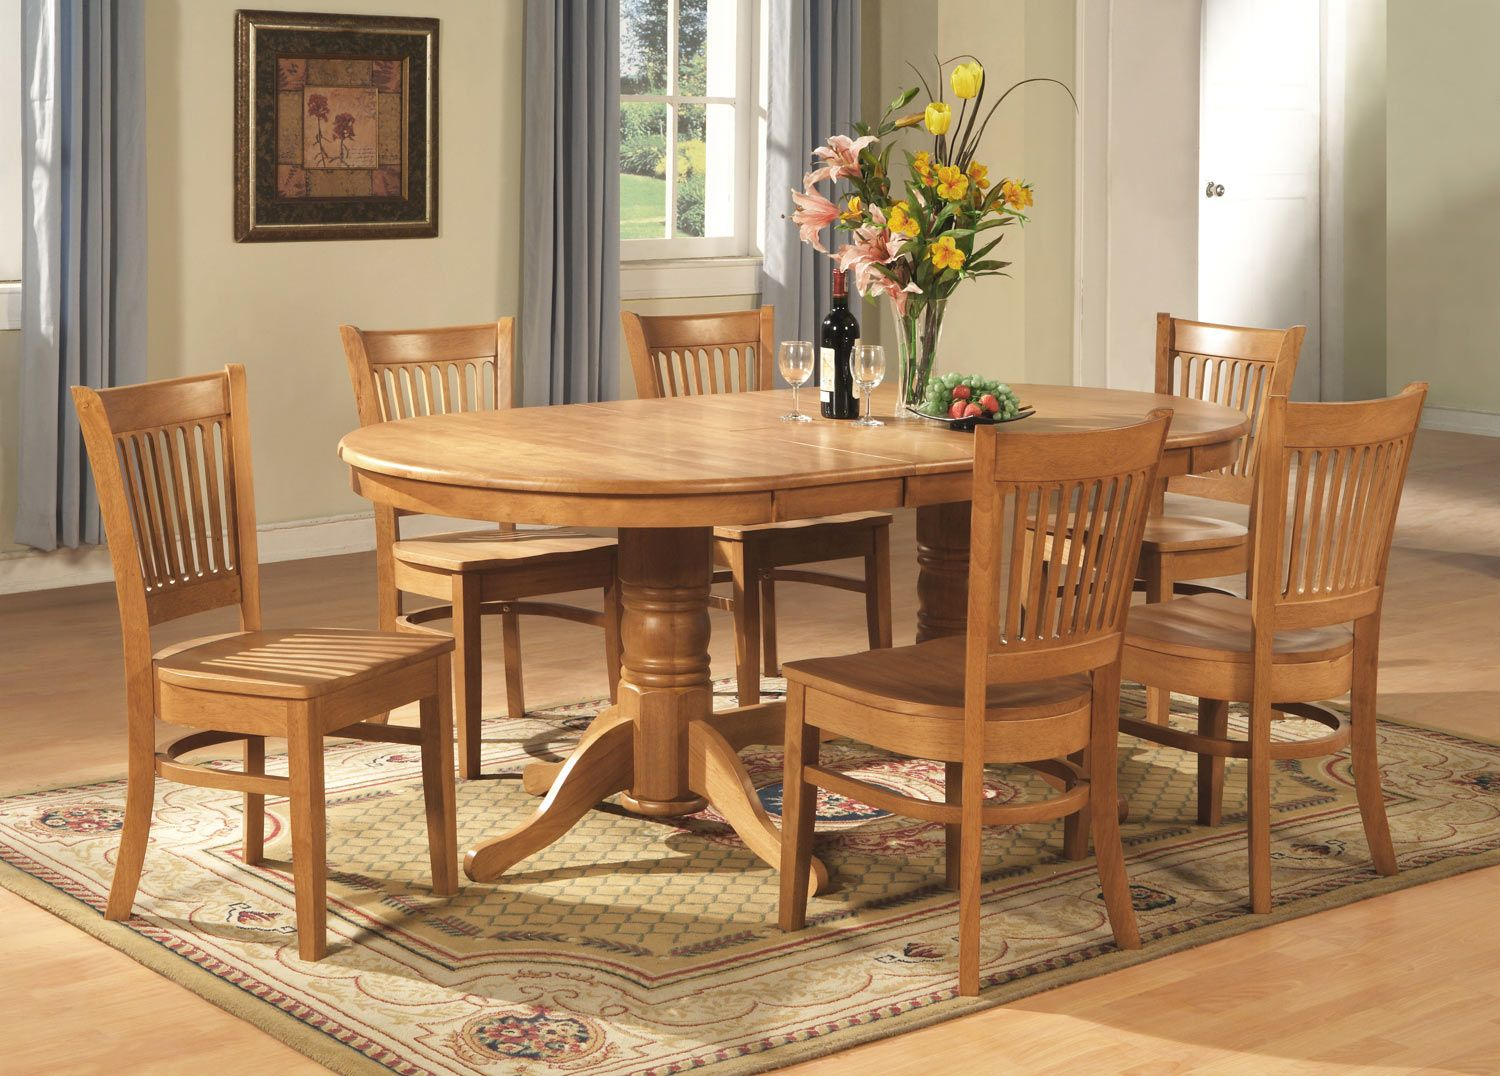 10 PC Vancouver Dining Set at http://stores.ebay.com/Dining